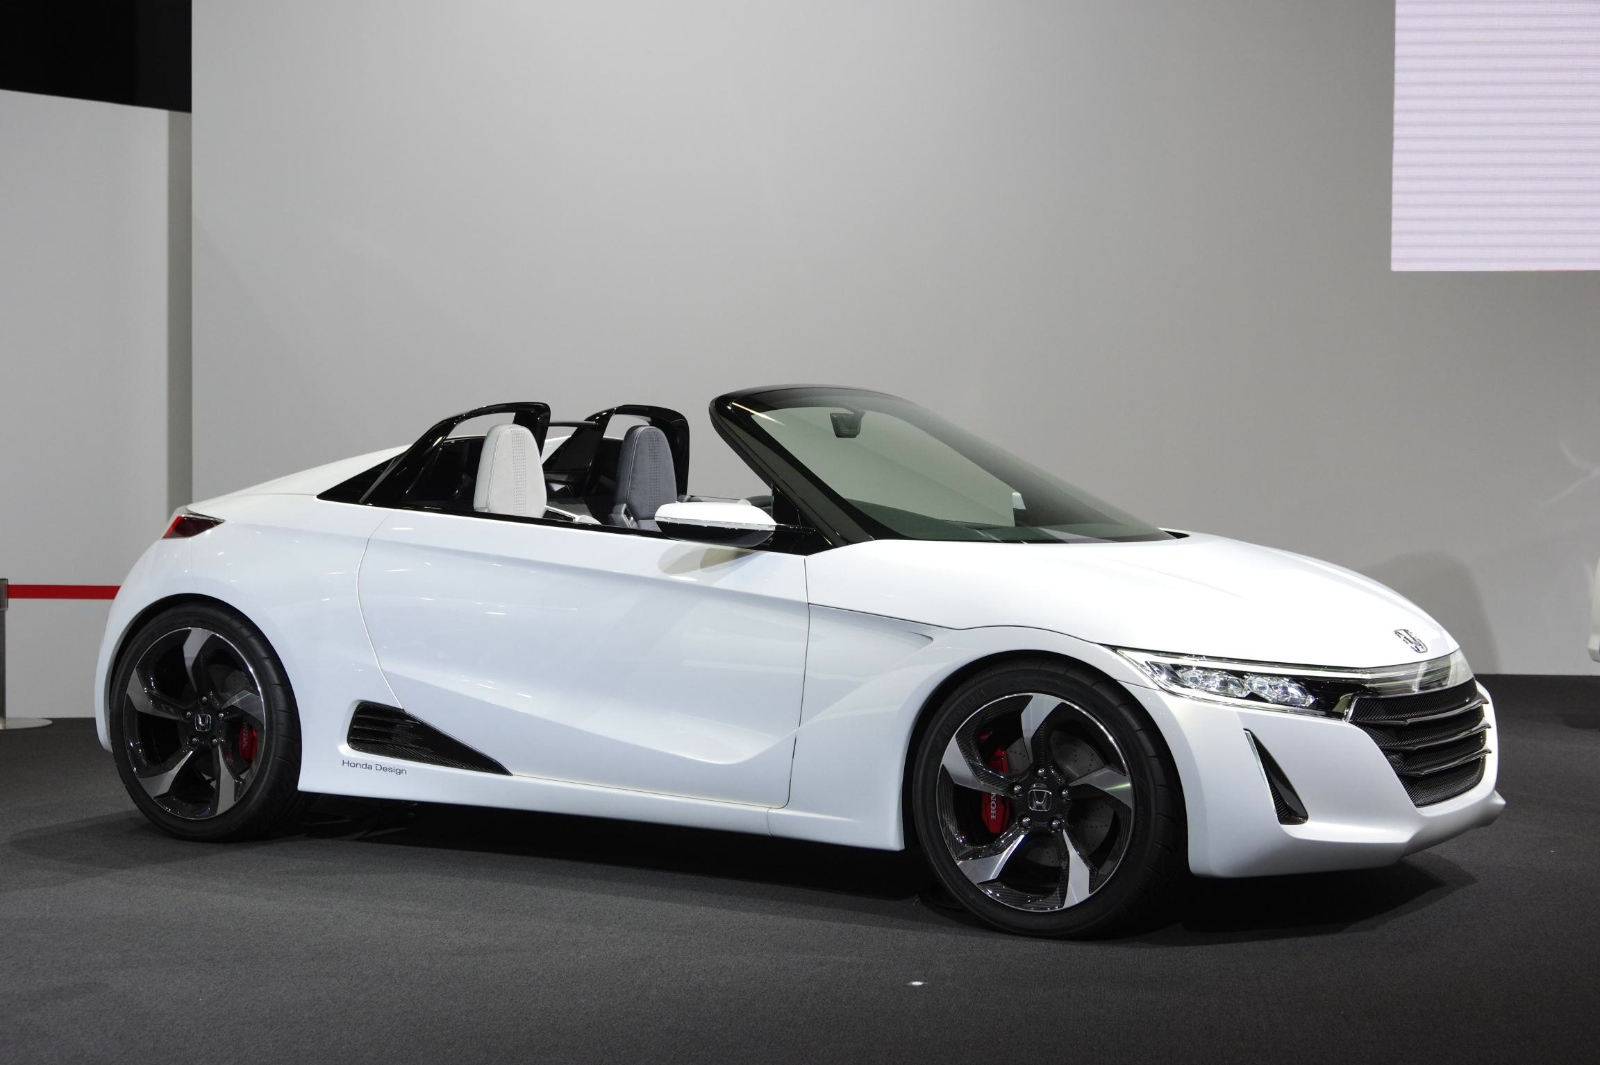 Shrunken Nsx Honda S660 Kei Sportscar Coming In 2015 Autoevolution